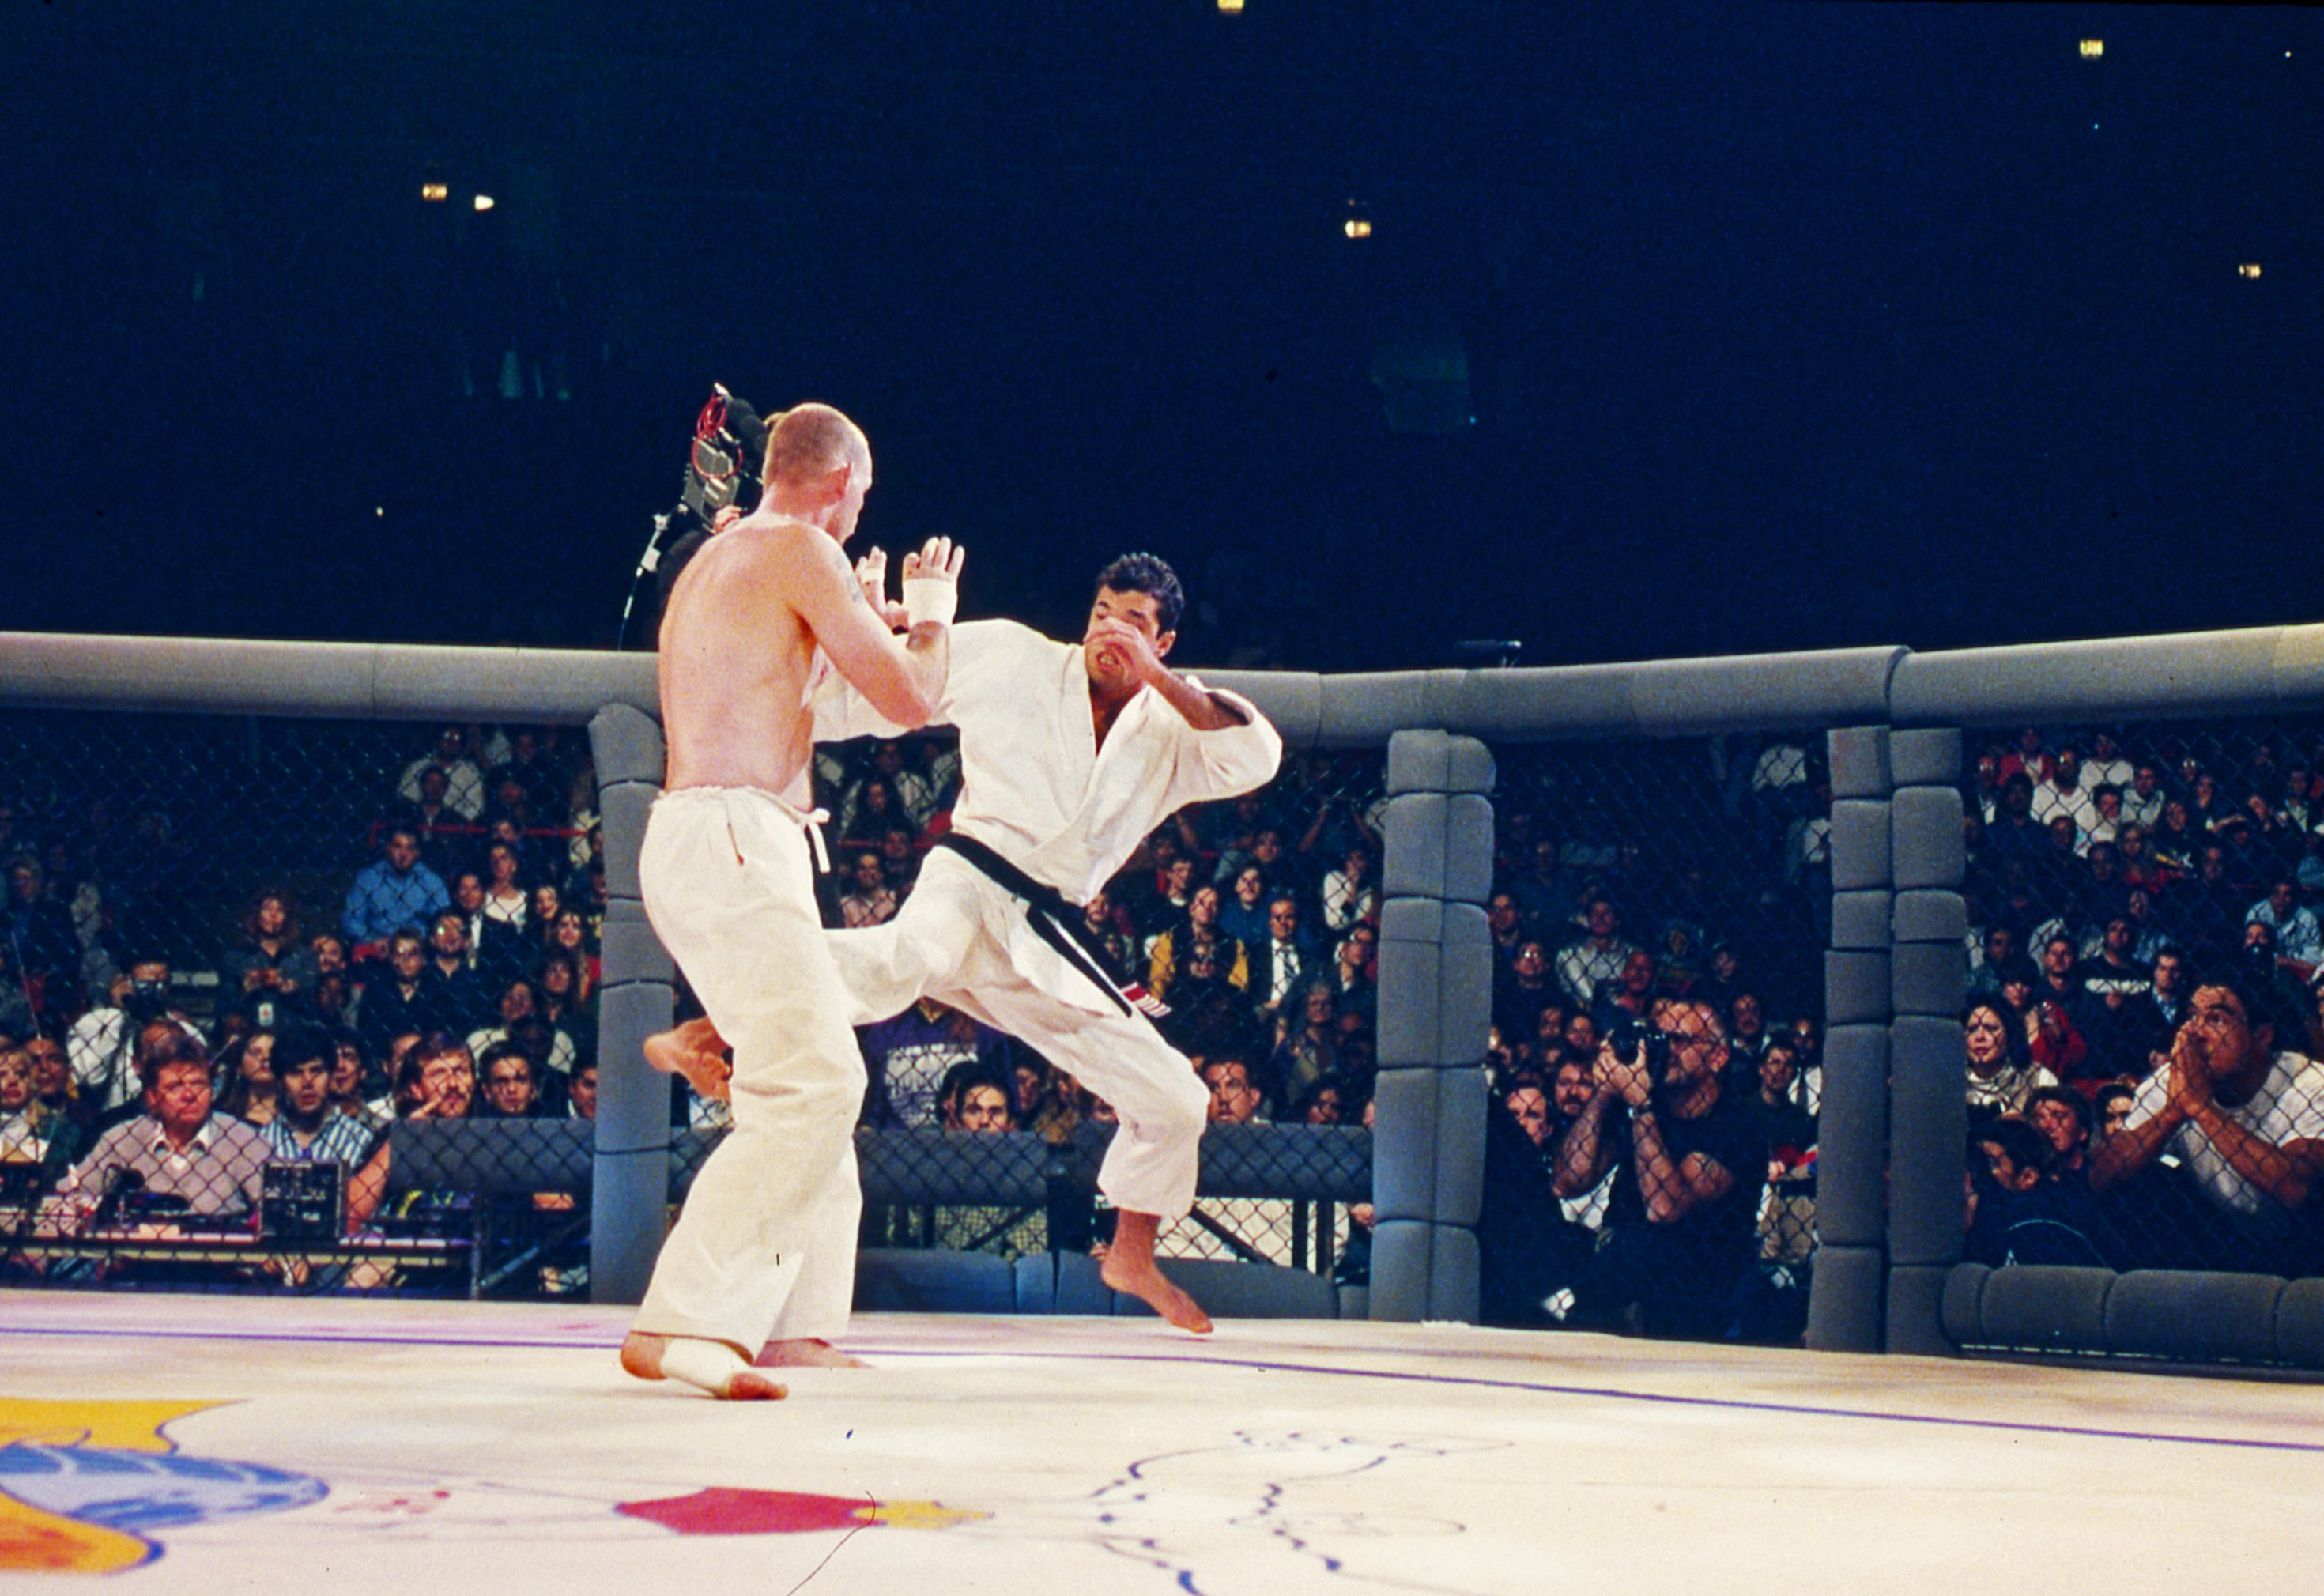 Royce Gracie fights in UFC 1